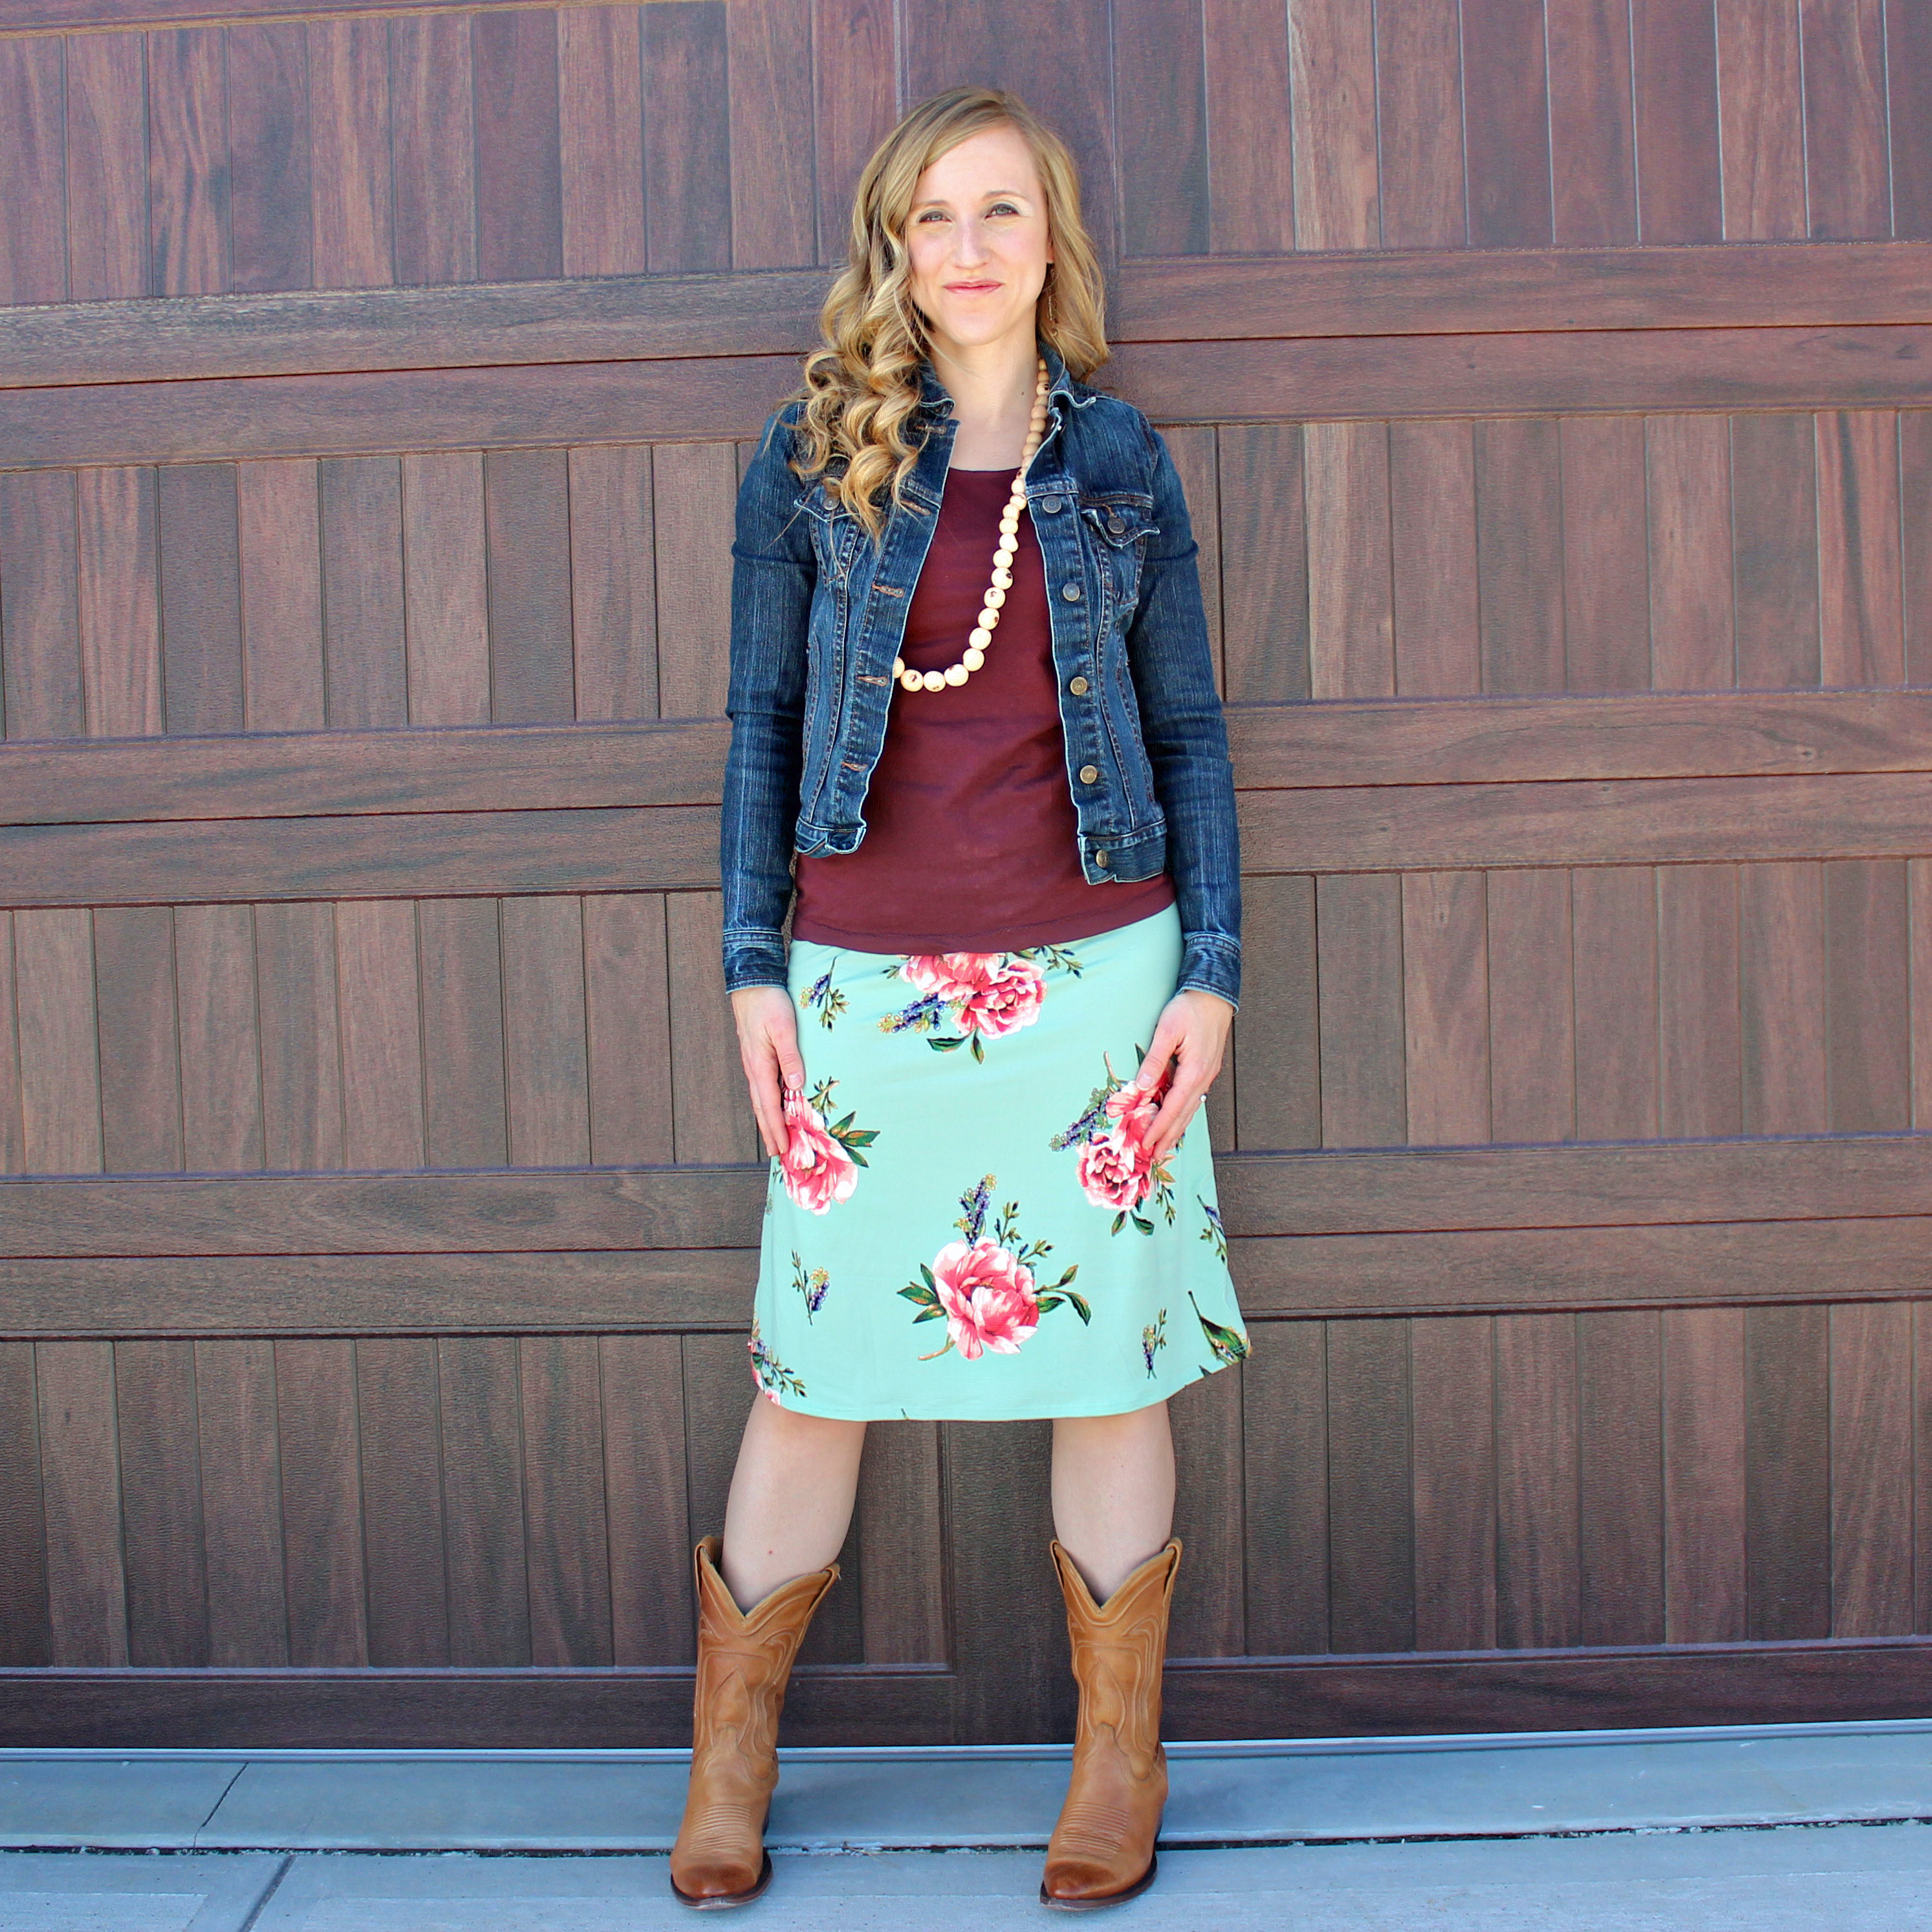 Floral Skirts and Cowboy Boots - Try Cute Dresses to Wear With Cowboy Boots